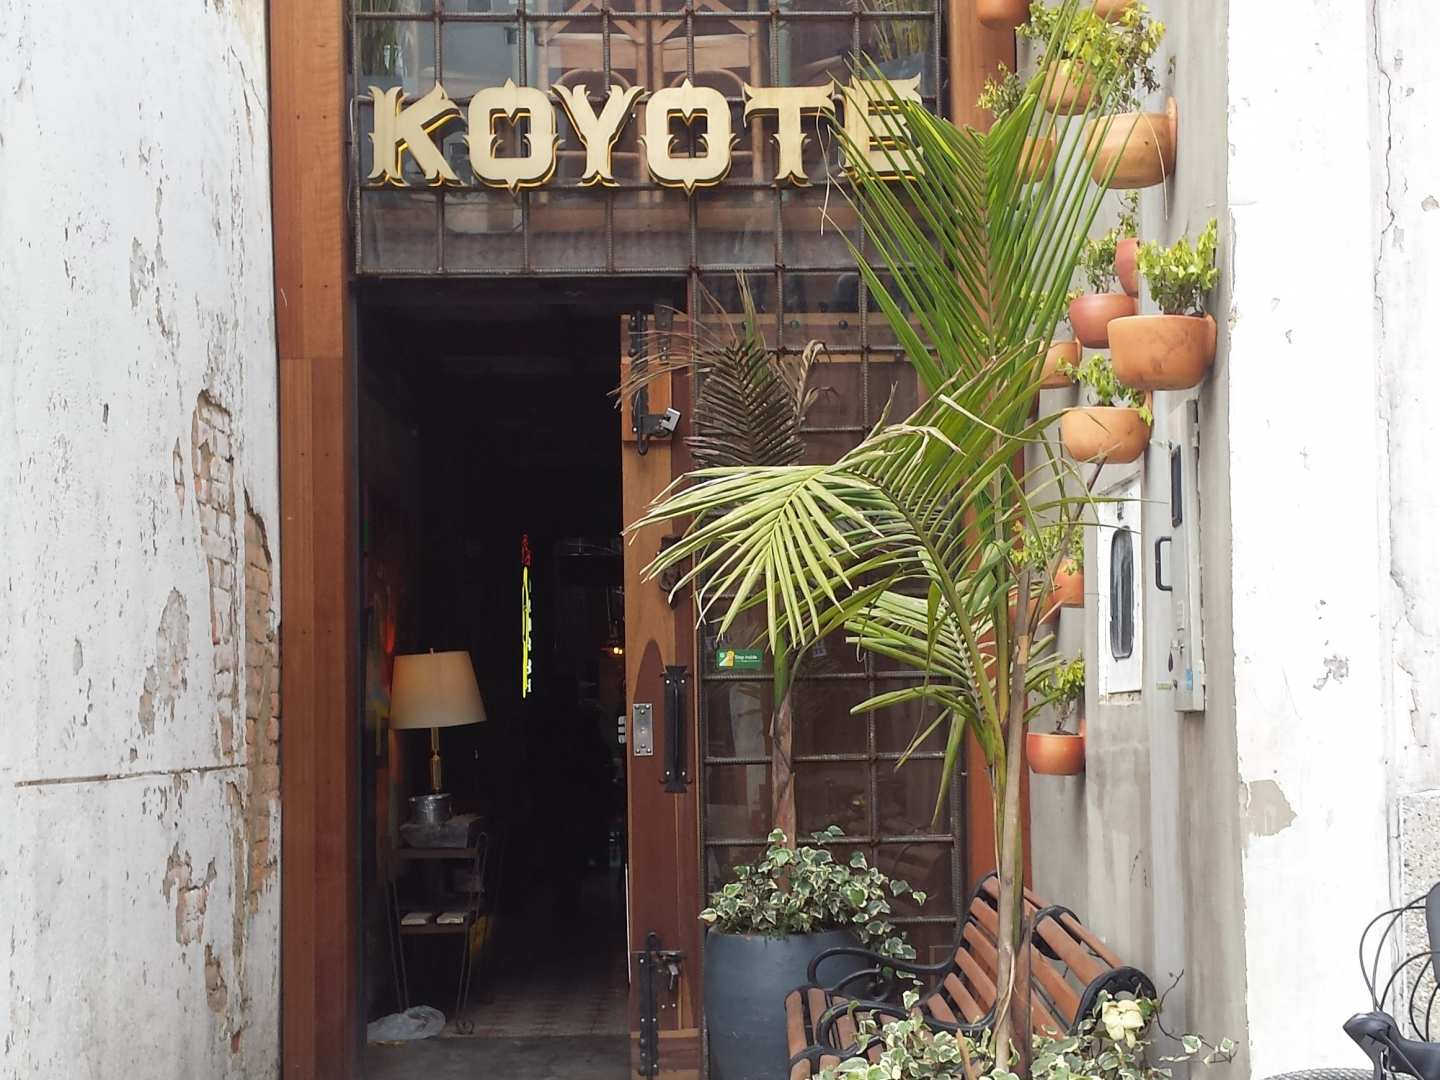 Koyote Barbacoa